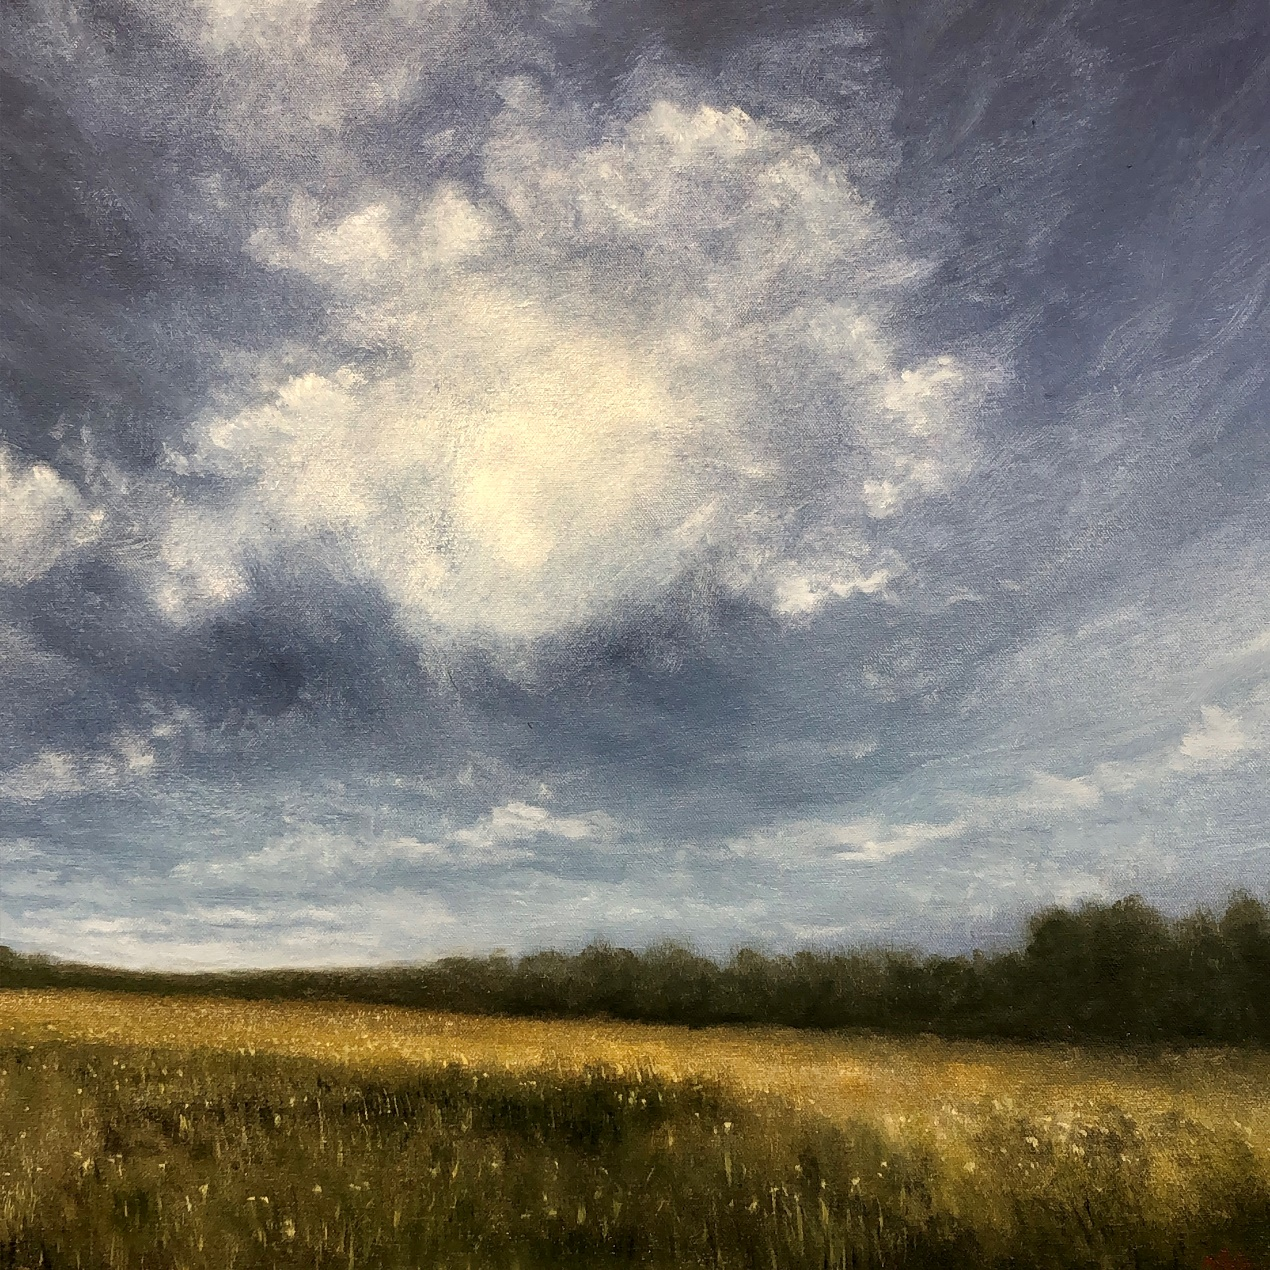 Summer Skies Over Castle Acre Priory Landscape Painting Nial Adams FRSA